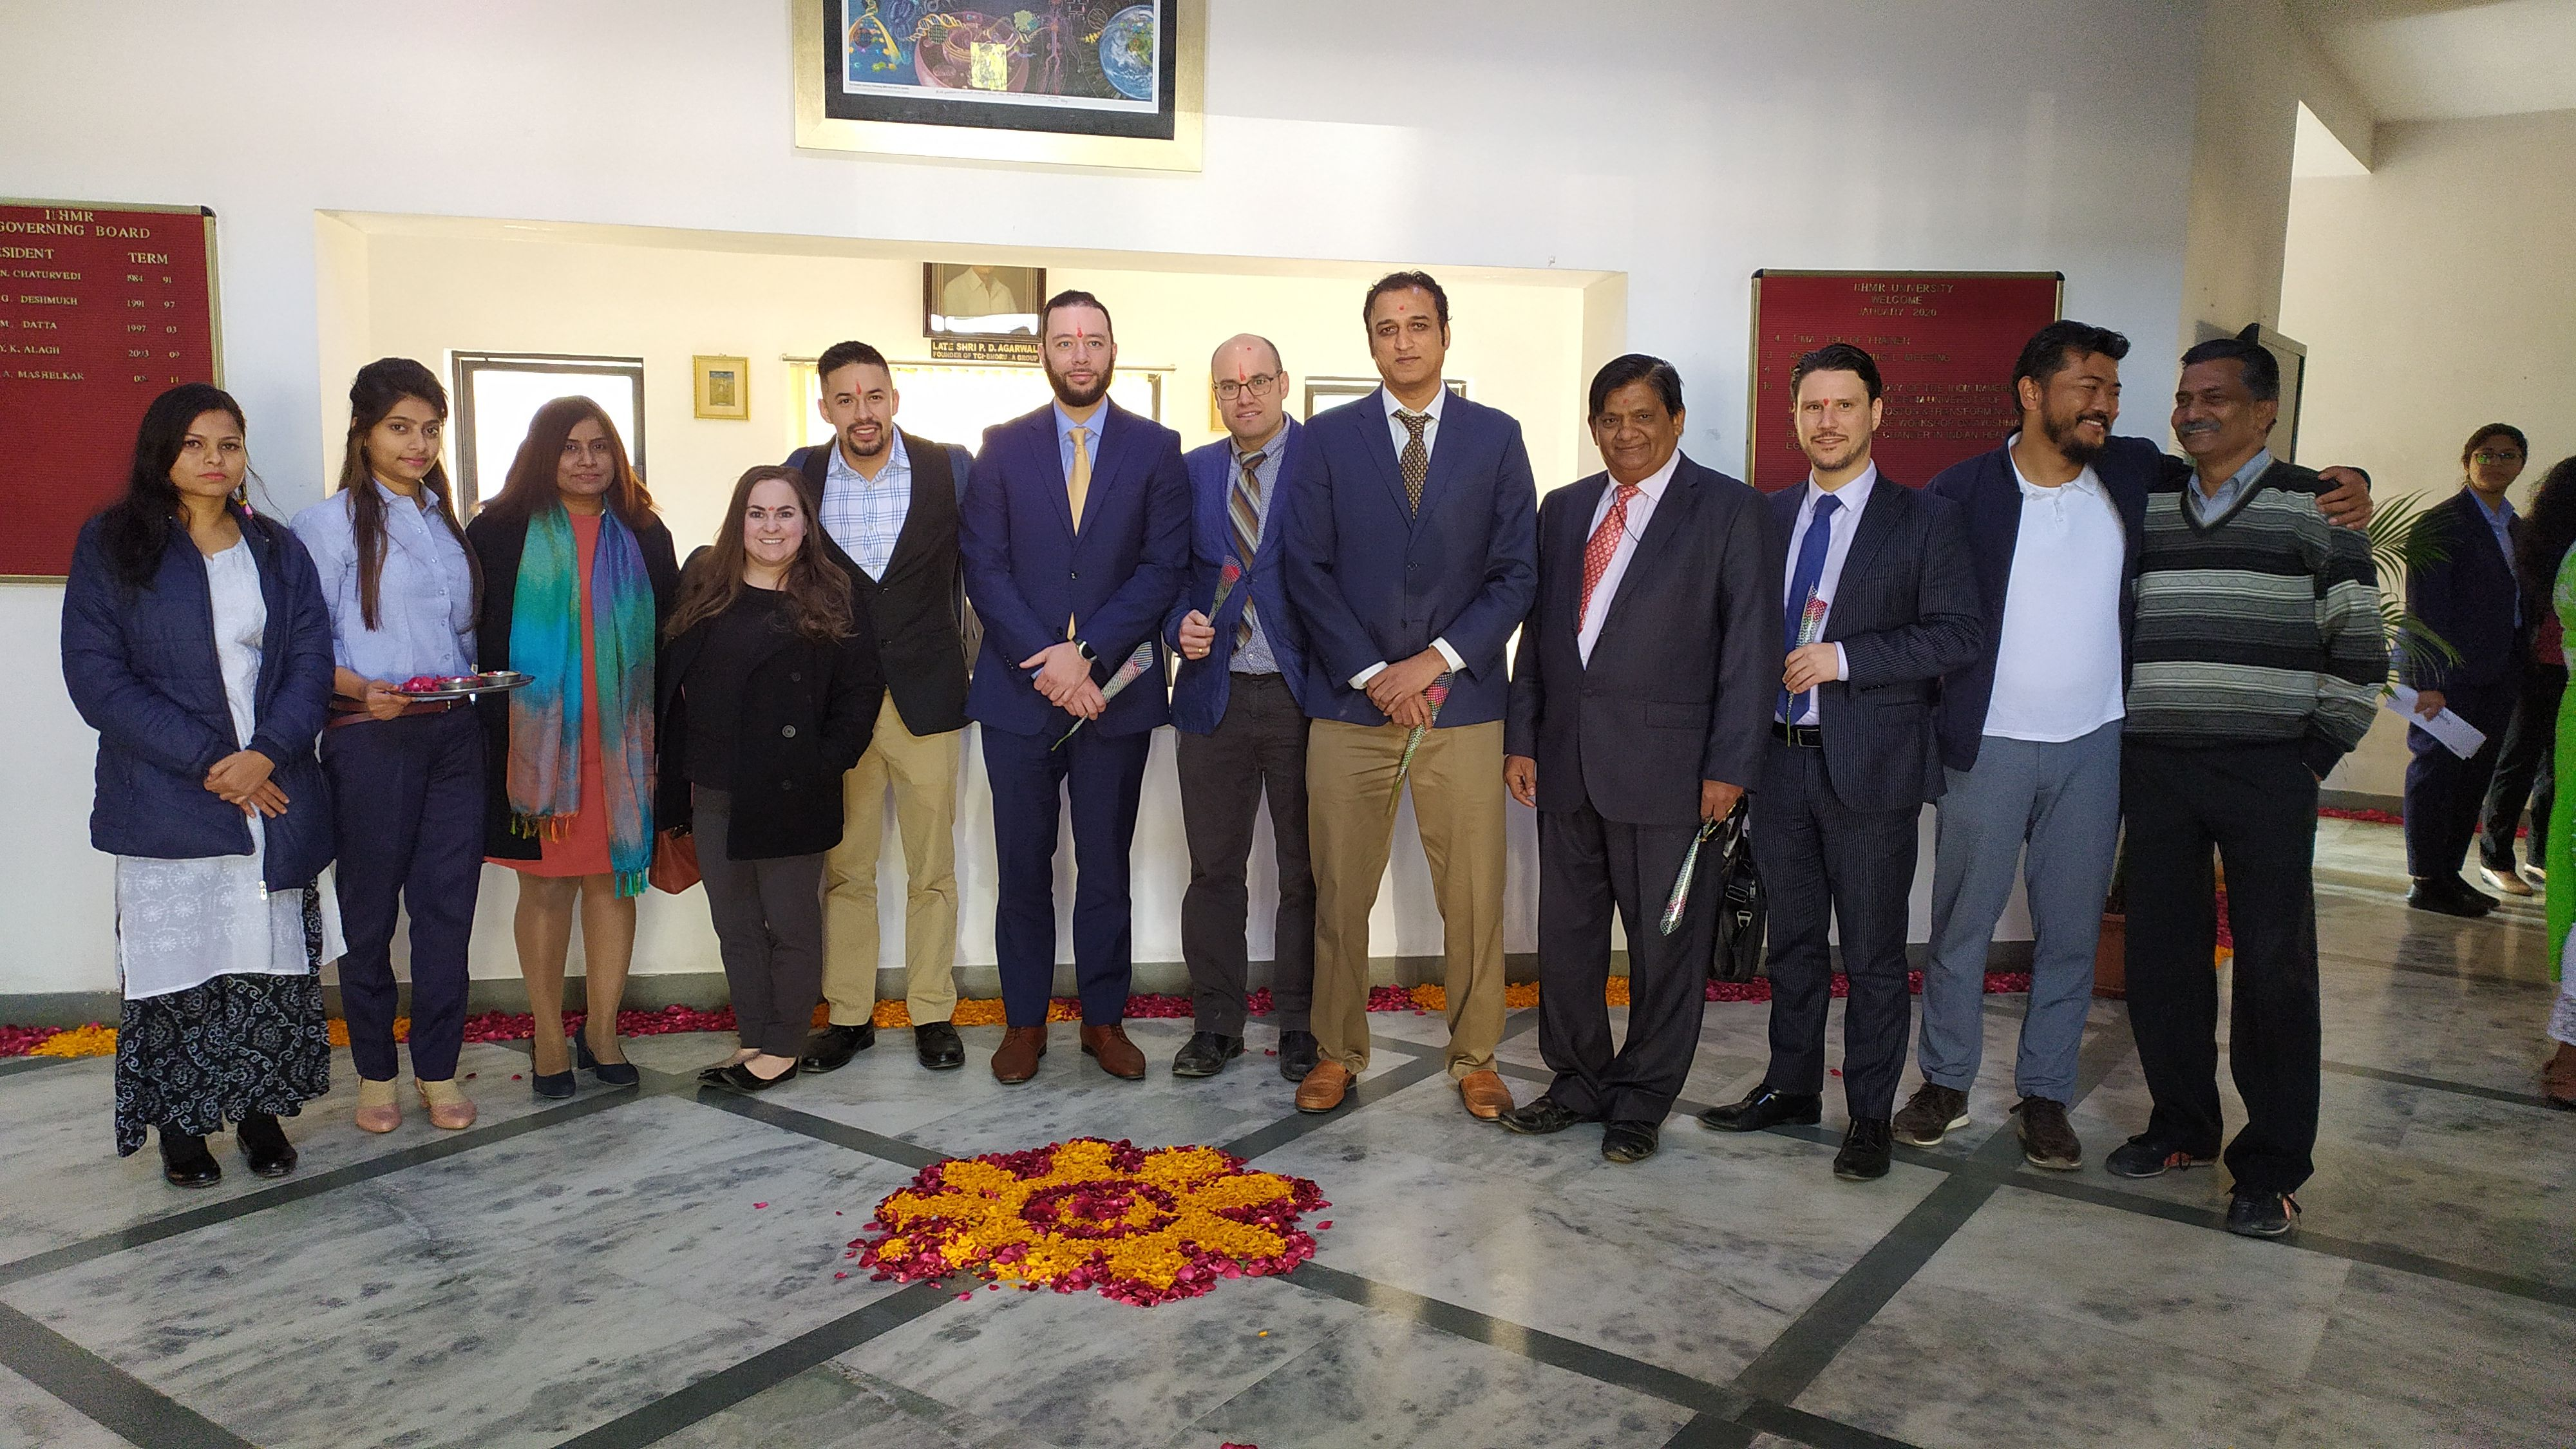 The Inaugural Ceremony of the India Immersion Visit of a student delegation from the University of Massachusetts Boston took place on 10 January 2020, at IIHMR University